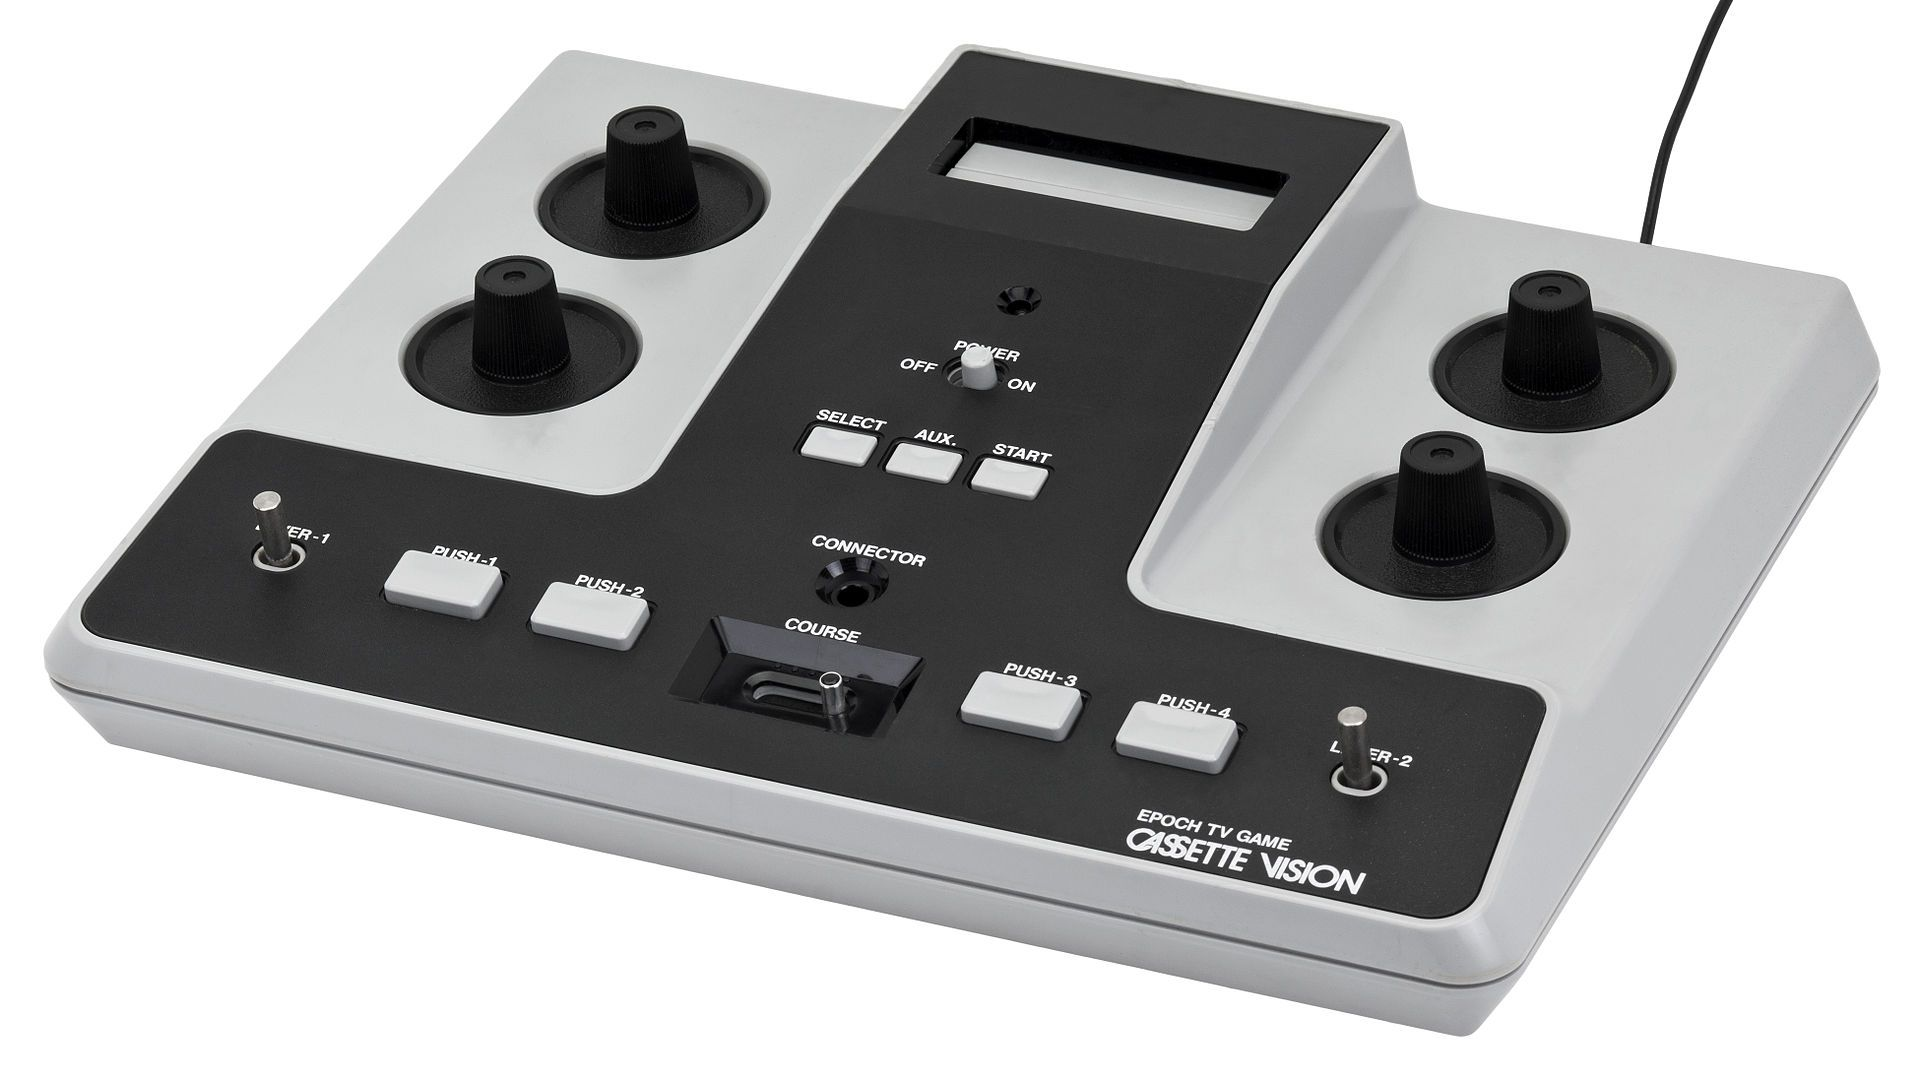 Epoch Cassette Vision video game console. Japanonly Atari